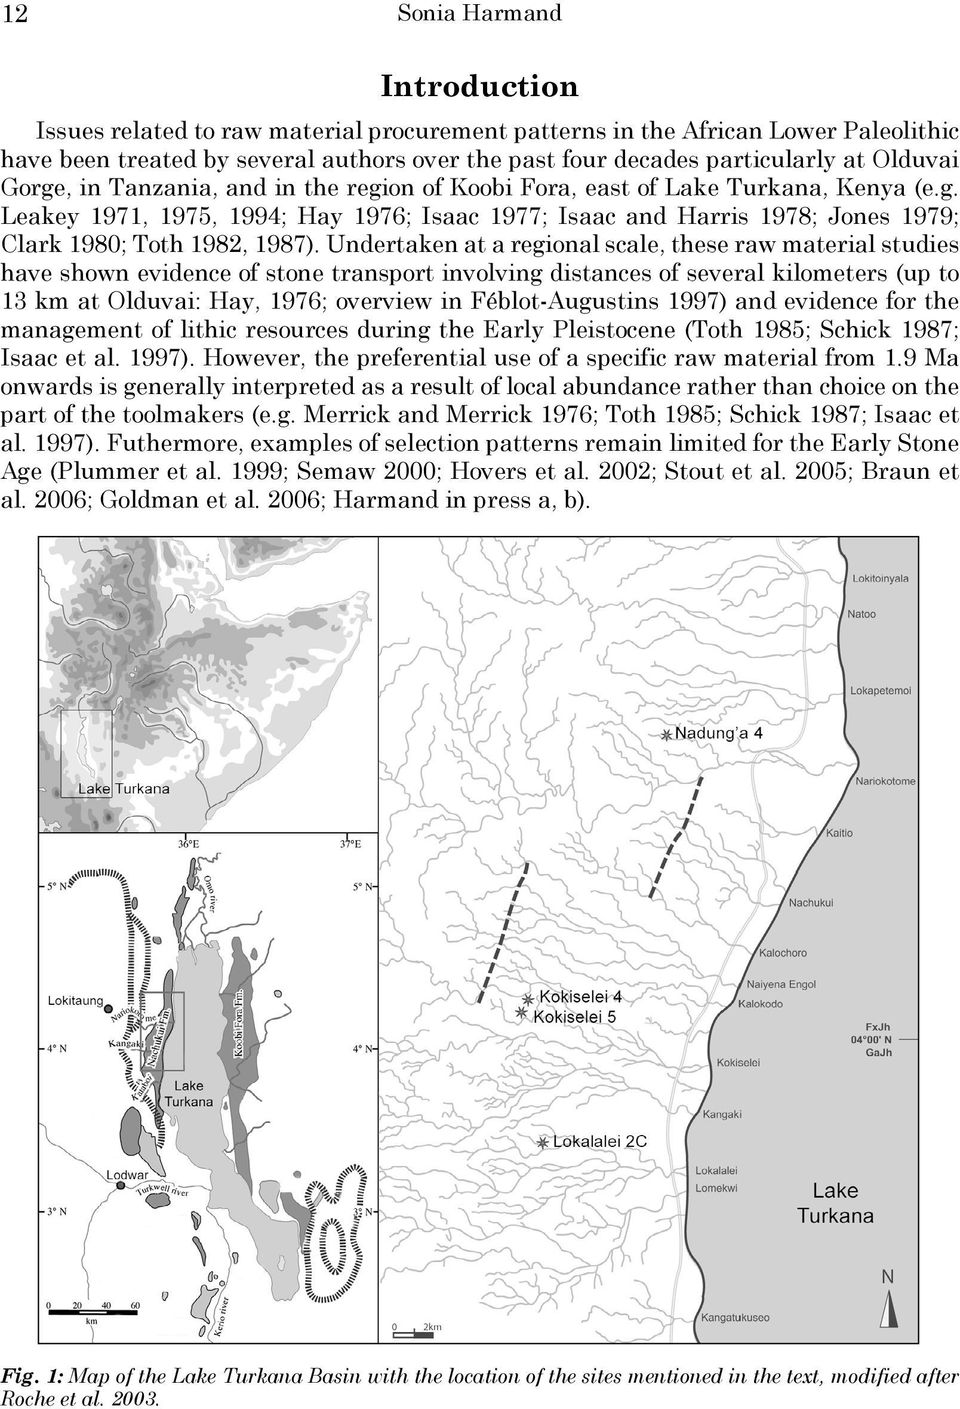 Undertaken at a regional scale, these raw material studies have shown evidence of stone transport involving distances of several kilometers (up to 13 km at Olduvai: Hay, 1976; overview in